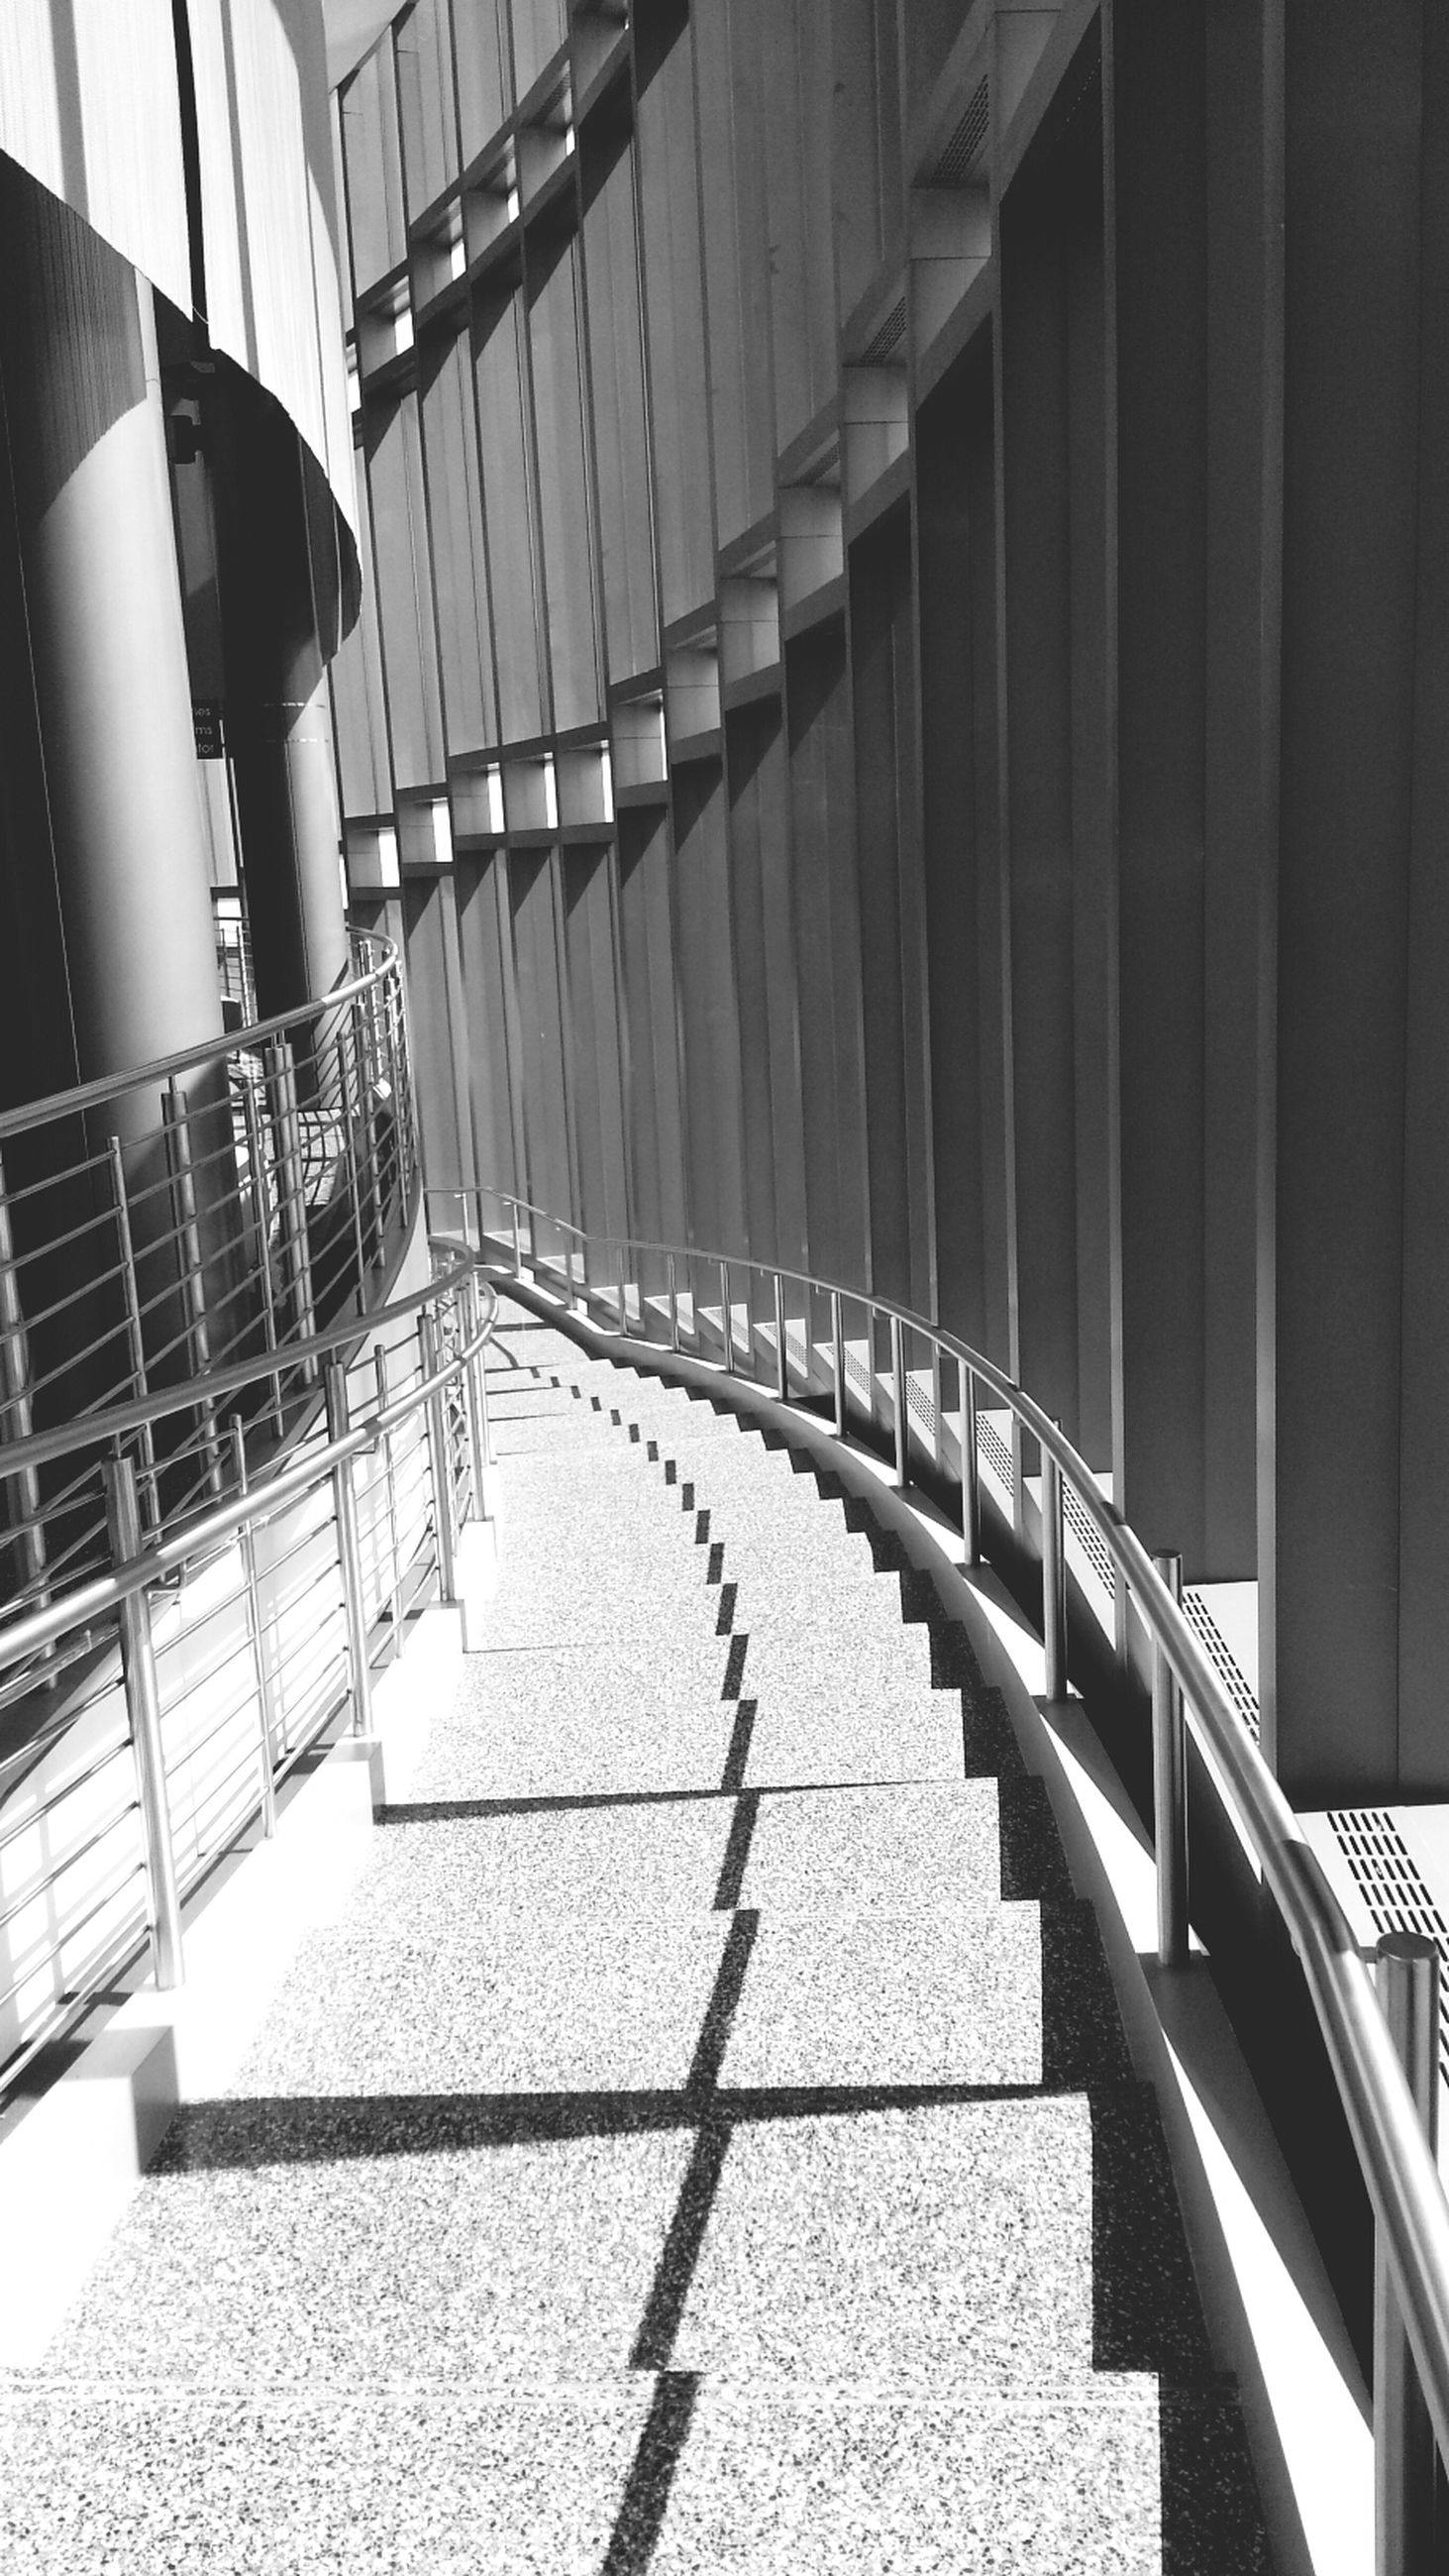 railing, built structure, architecture, the way forward, steps, sunlight, steps and staircases, diminishing perspective, incidental people, walkway, shadow, indoors, transportation, walking, empty, building exterior, vanishing point, day, footpath